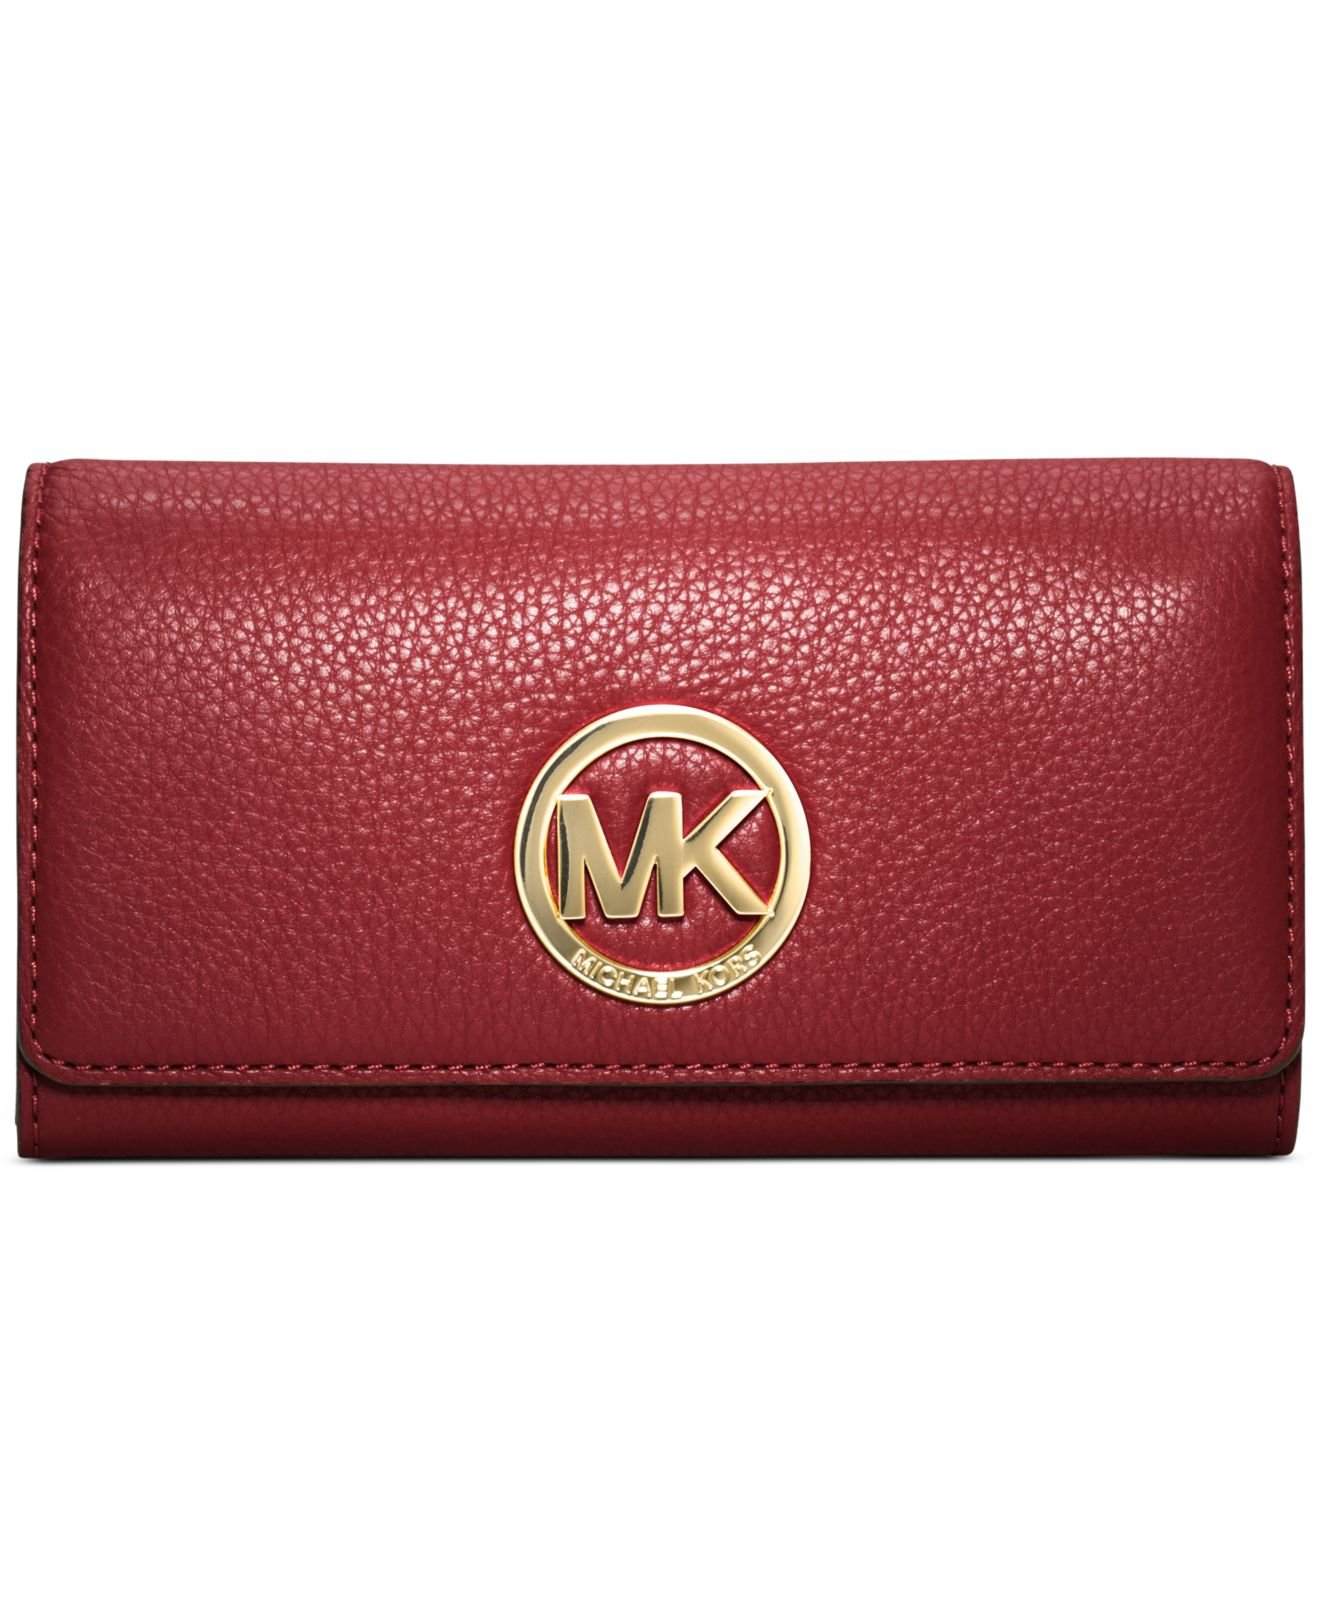 13c8bf3a1fa13c Michael Kors Fulton Wallet Macy's | Stanford Center for Opportunity ...